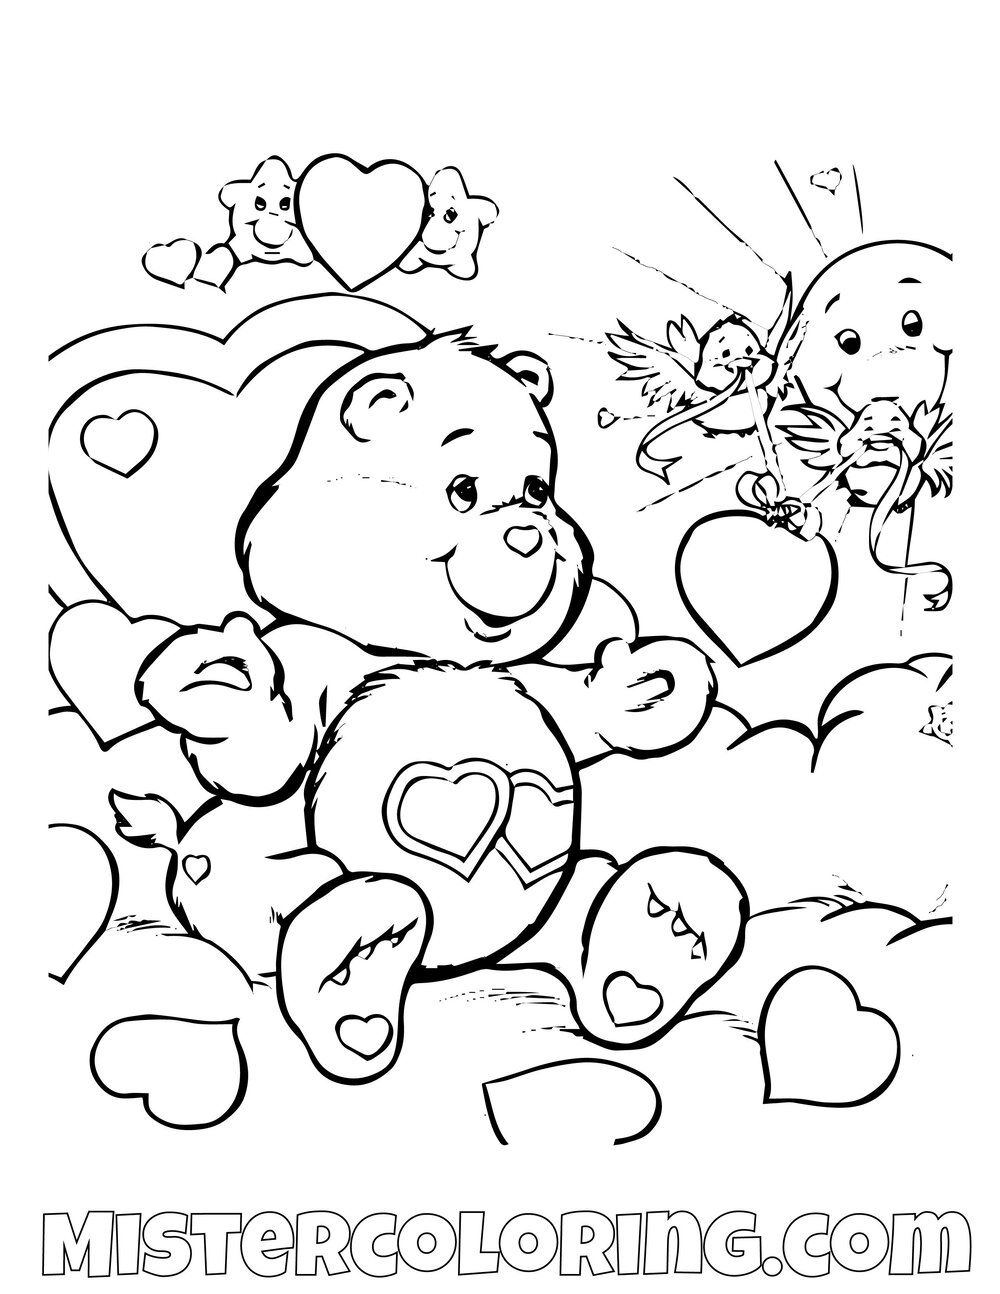 Respect Coloring Pages For Kindergarten Self Showing To Print